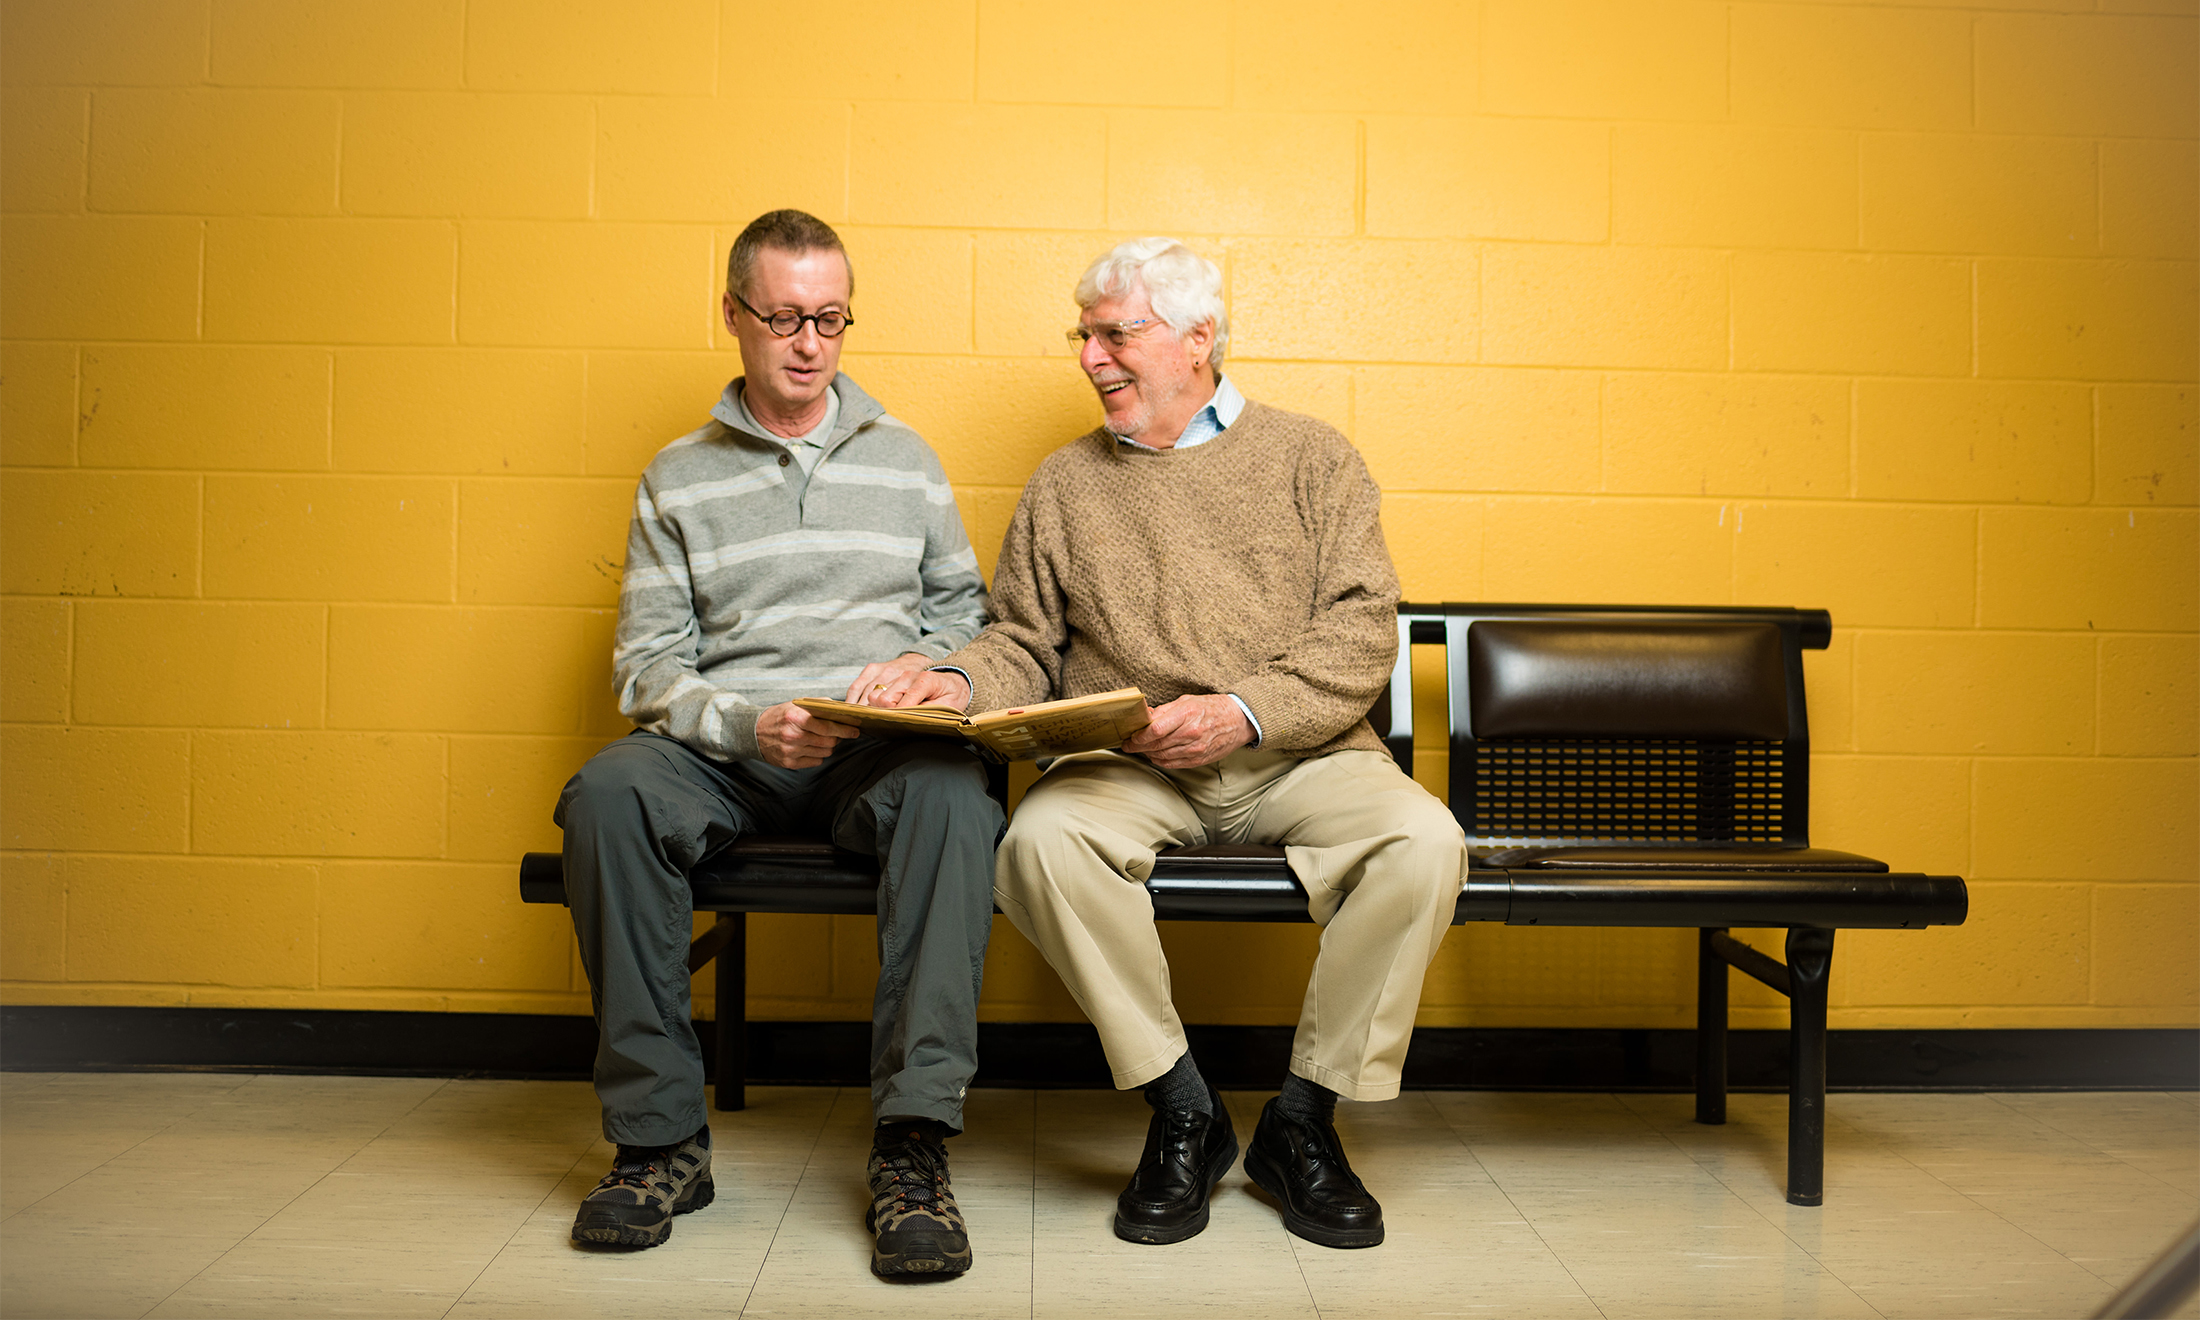 Oakland University alumni Bruce Voss and Al Monetta sit in front of a gold wall on campus